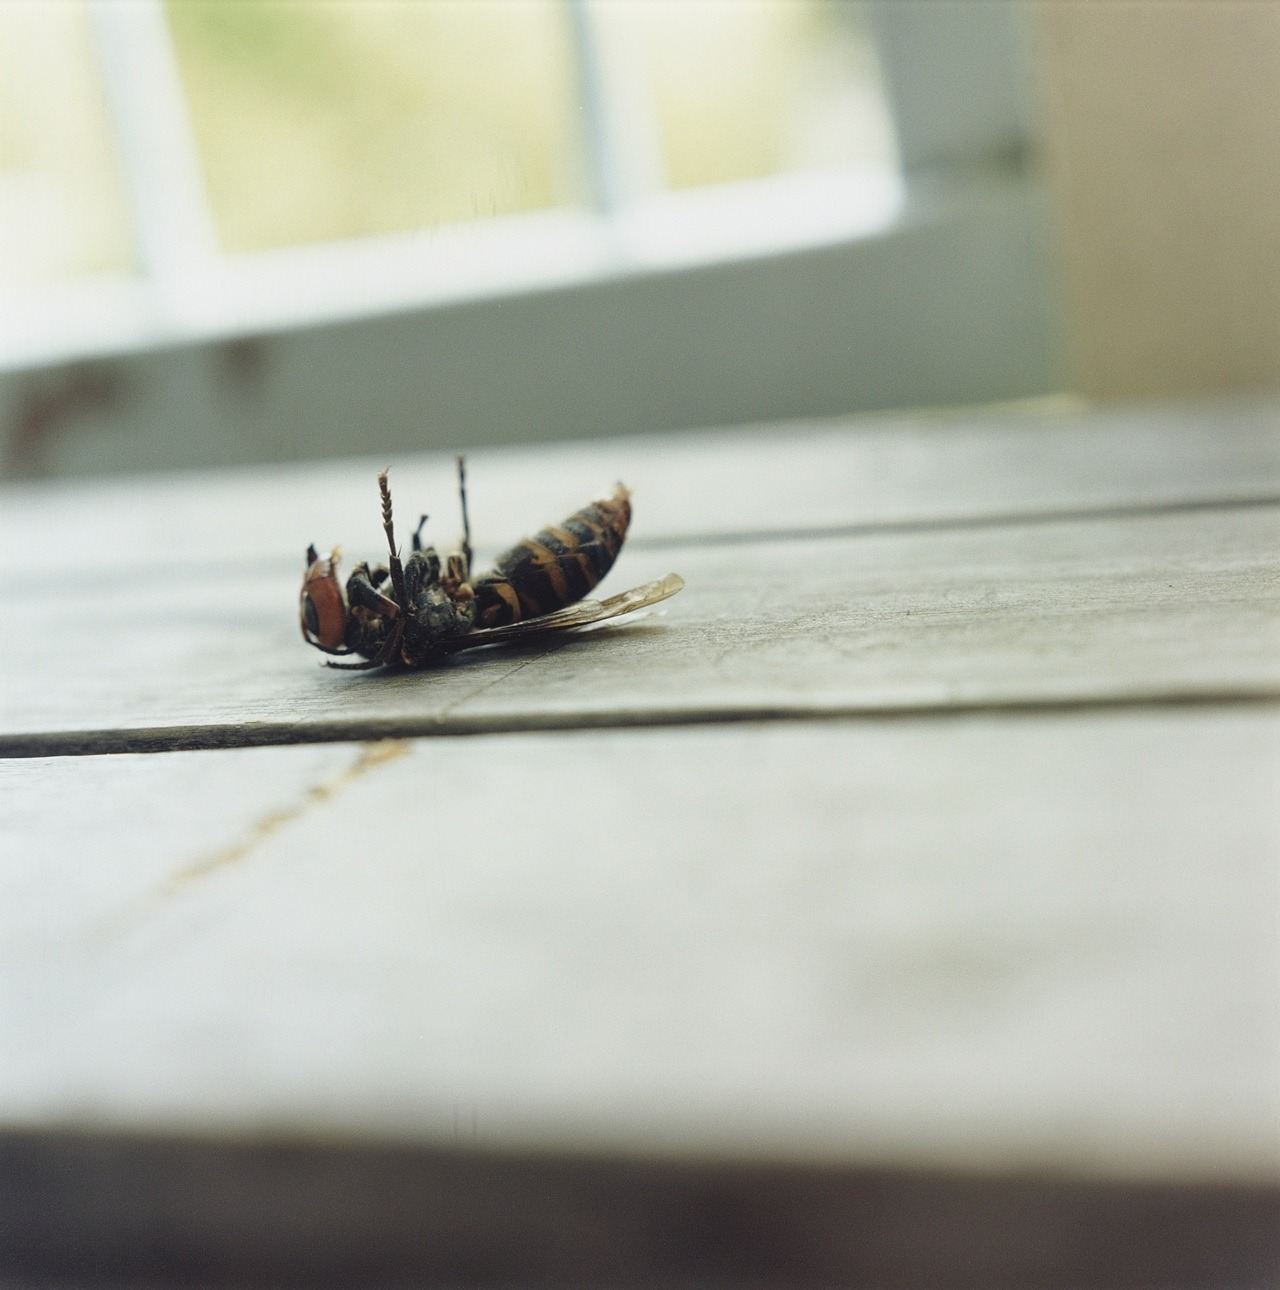 From Christie's London Photographs Sale (May 16, 2012):  Lot 100: Rinko Kawauchi, Untitled, from the series Utanane, 2001, chromogenic print, ed of 6, flush-mounted on aludibond, signed in ink on a gallery label with printed credit, title, date and number '5/6' (flush mount, verso), image/flush mount: 40 x 40 in (101.5 x 101.5 cm). Est. £4,000-6,000, sold £3,750. (c) Rinko Kawauchi Courtesy Christie's Images Ltd 2012.